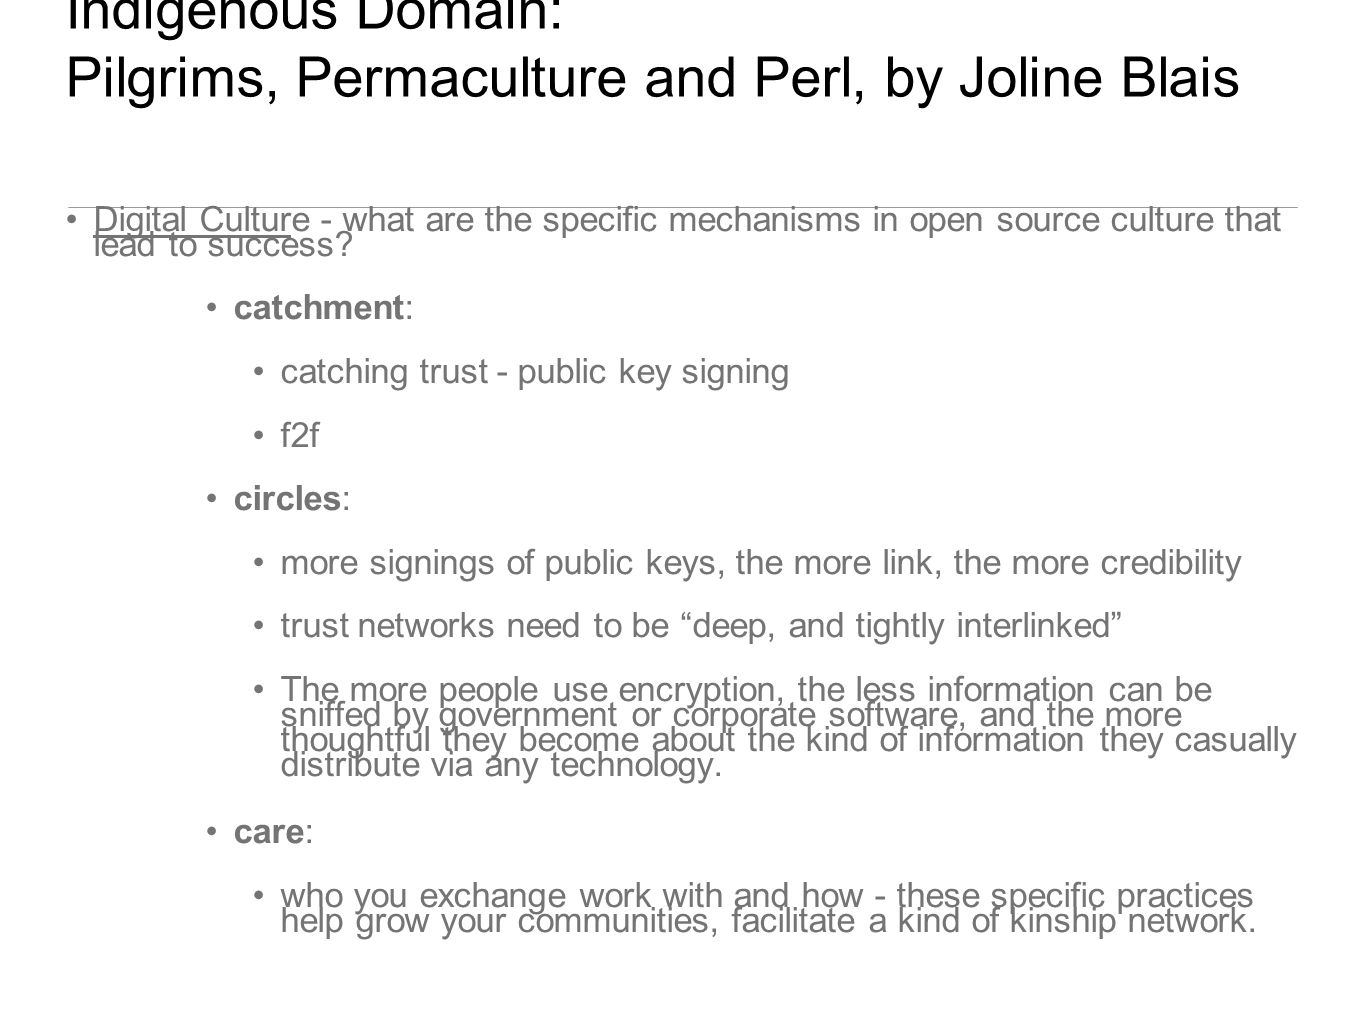 Indigenous Domain: Pilgrims, Permaculture and Perl, by Joline Blais Digital Culture - what are the specific mechanisms in open source culture that lea